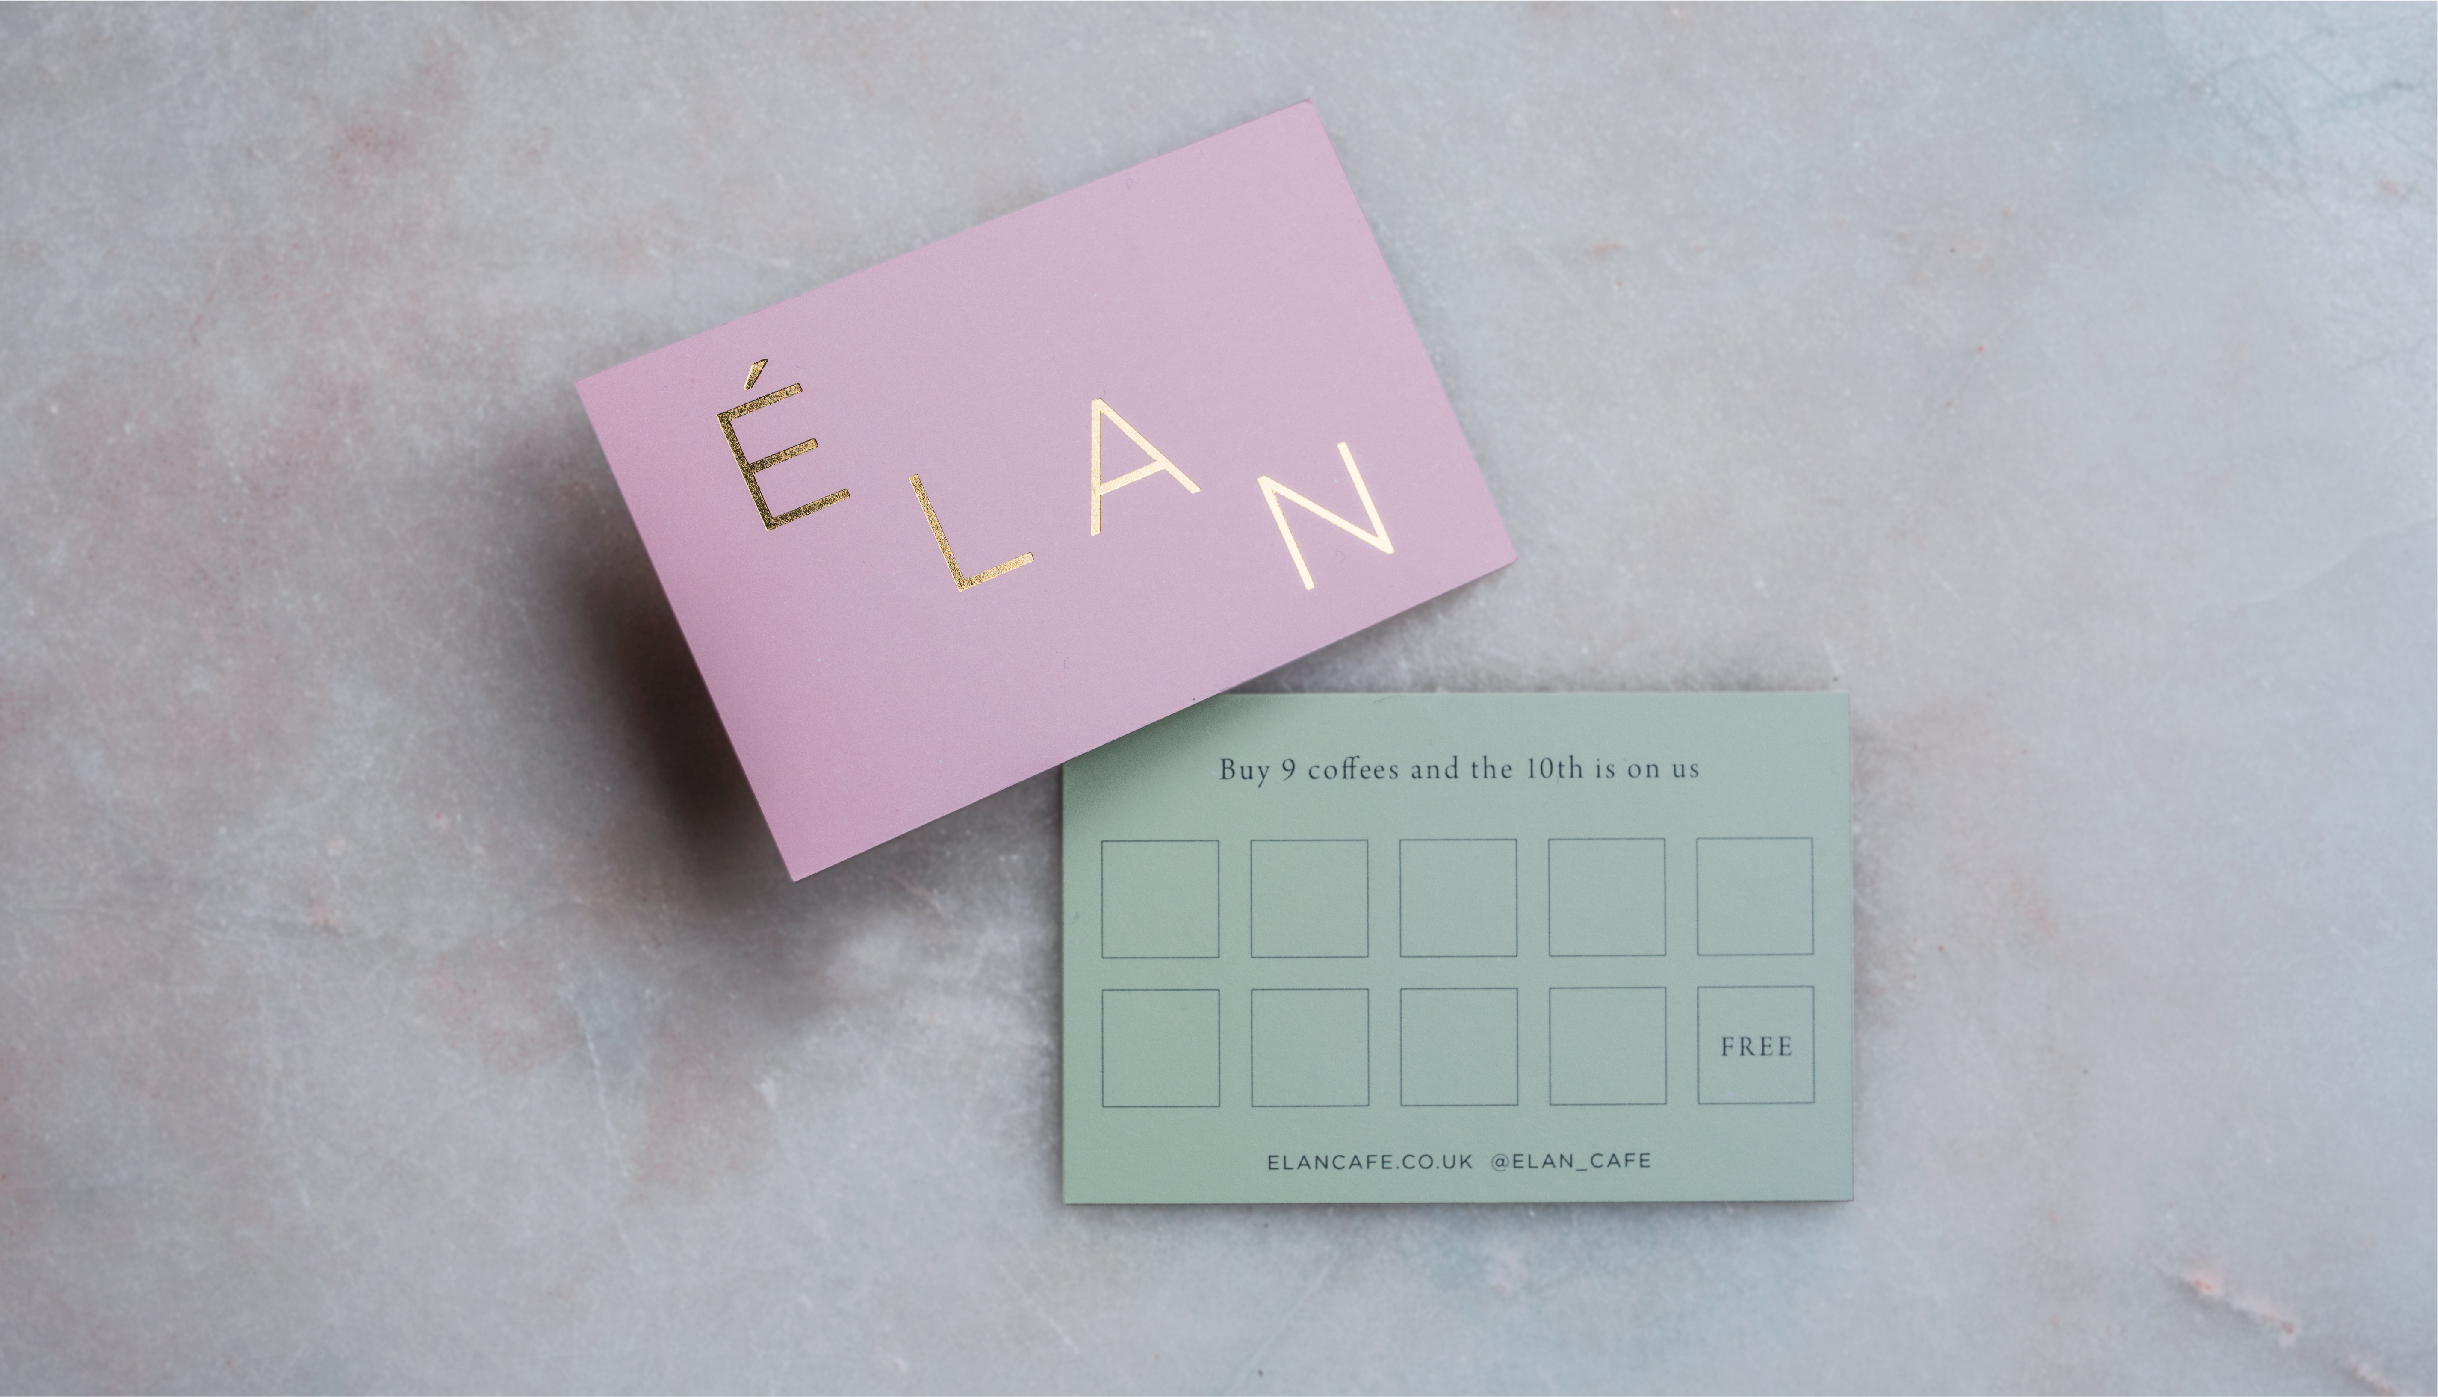 Graphic design of Elan Café loyalty card. Gold foil logo on pink and green card shot on marble background